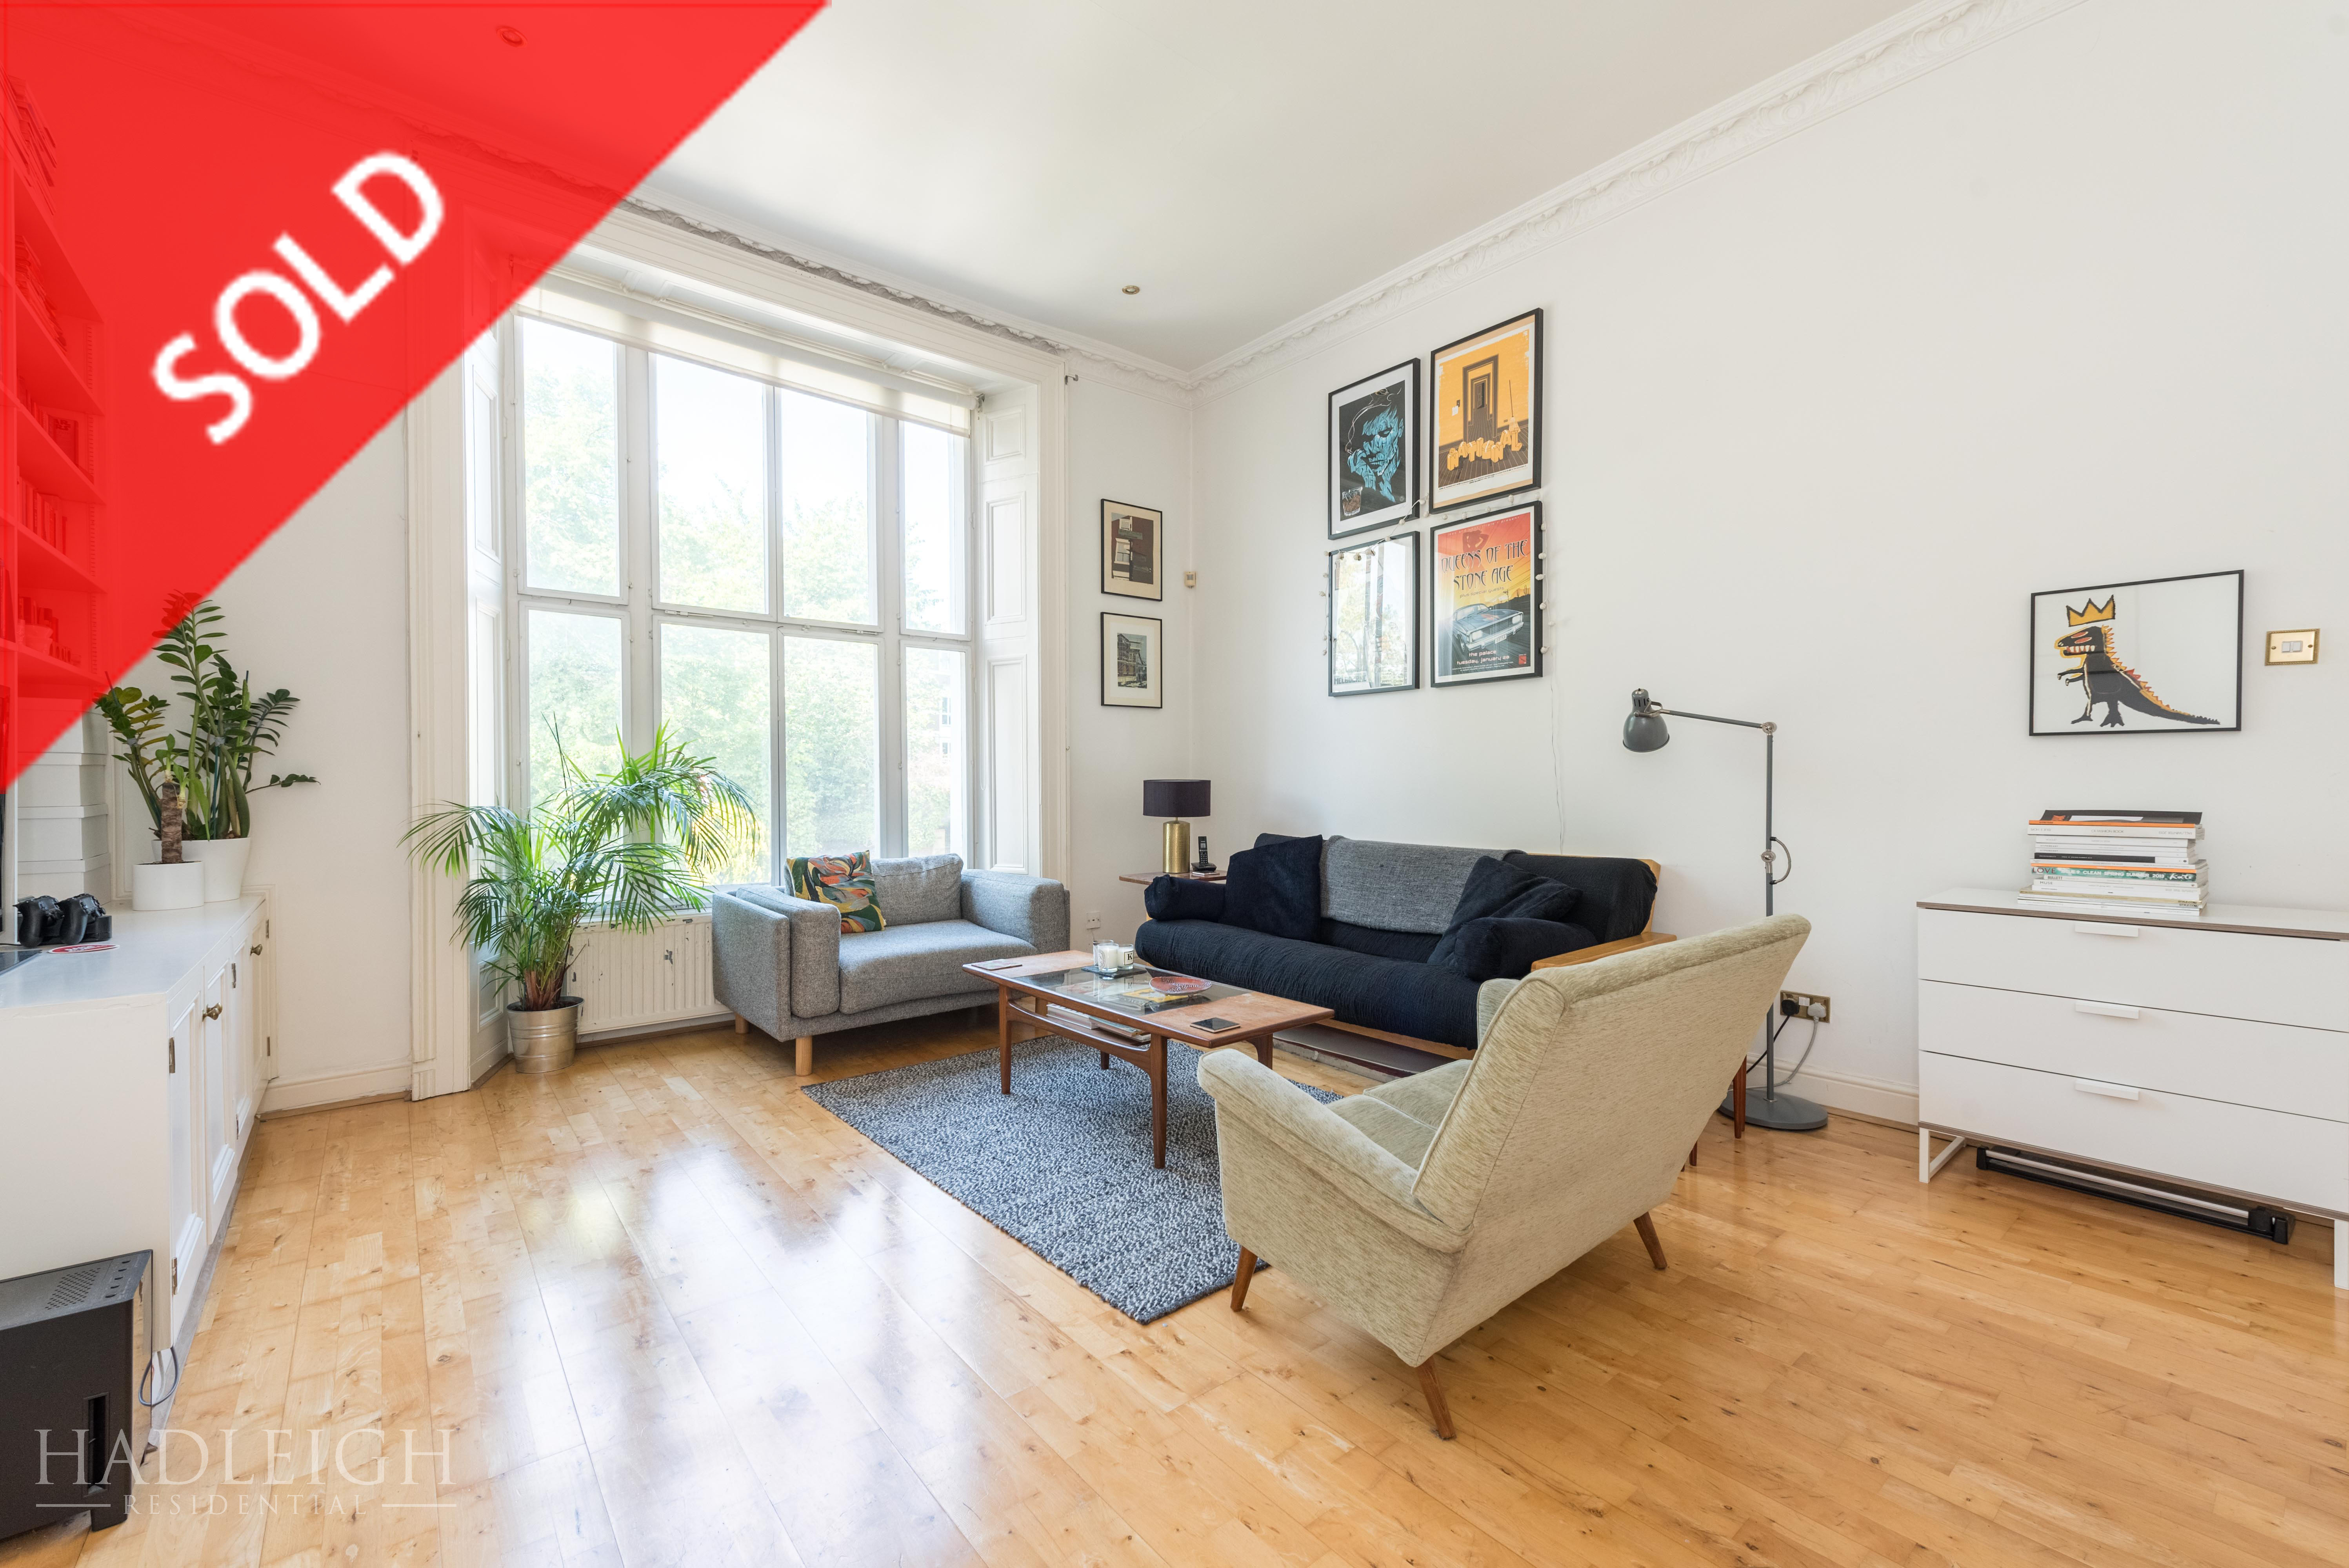 162 Haverstock Hill - Purchaser